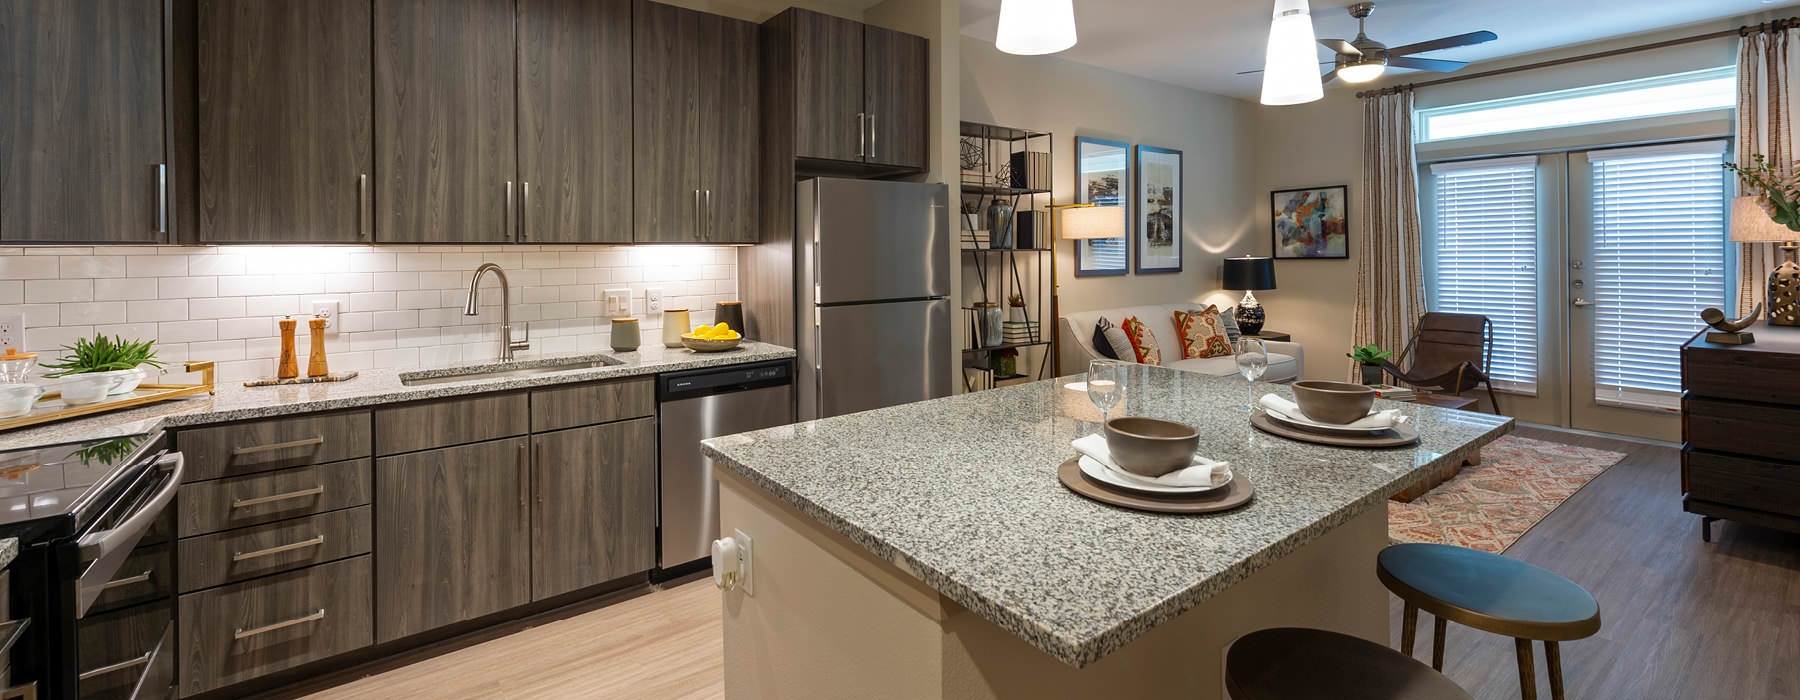 pendant lighting brightens kitchen island with counter seating